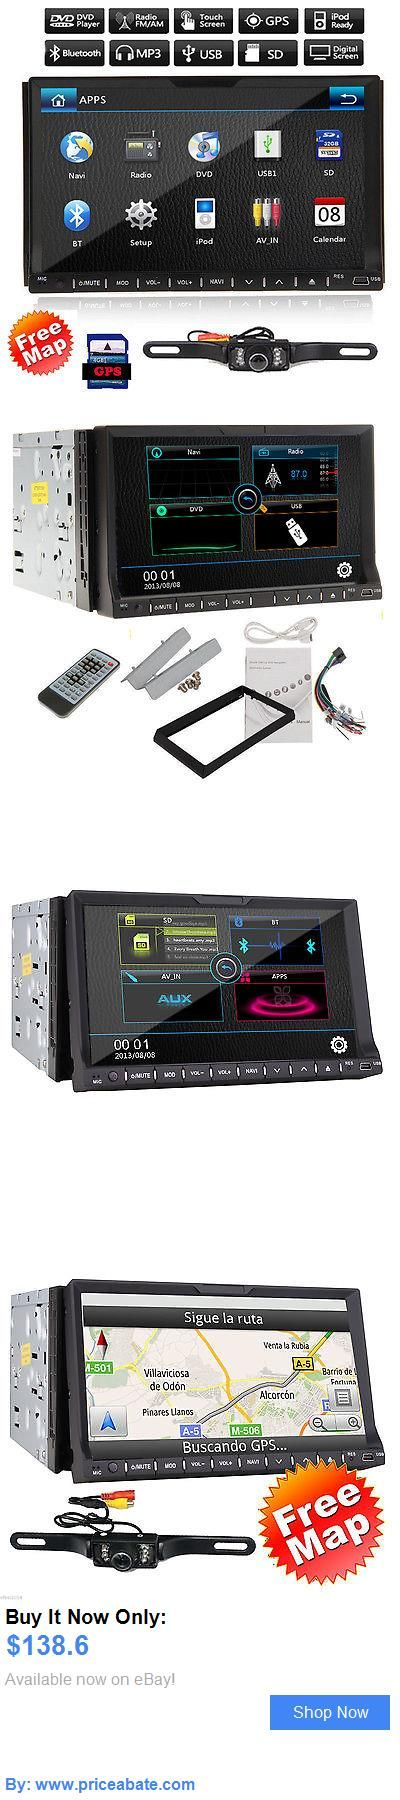 Vehicle Electronics And GPS: Double 2 Din 7 Gps Car Dvd Mp3 Player Touch Screen In Dash Stereo Camera BUY IT NOW ONLY: $138.6 #priceabateVehicleElectronicsAndGPS OR #priceabate